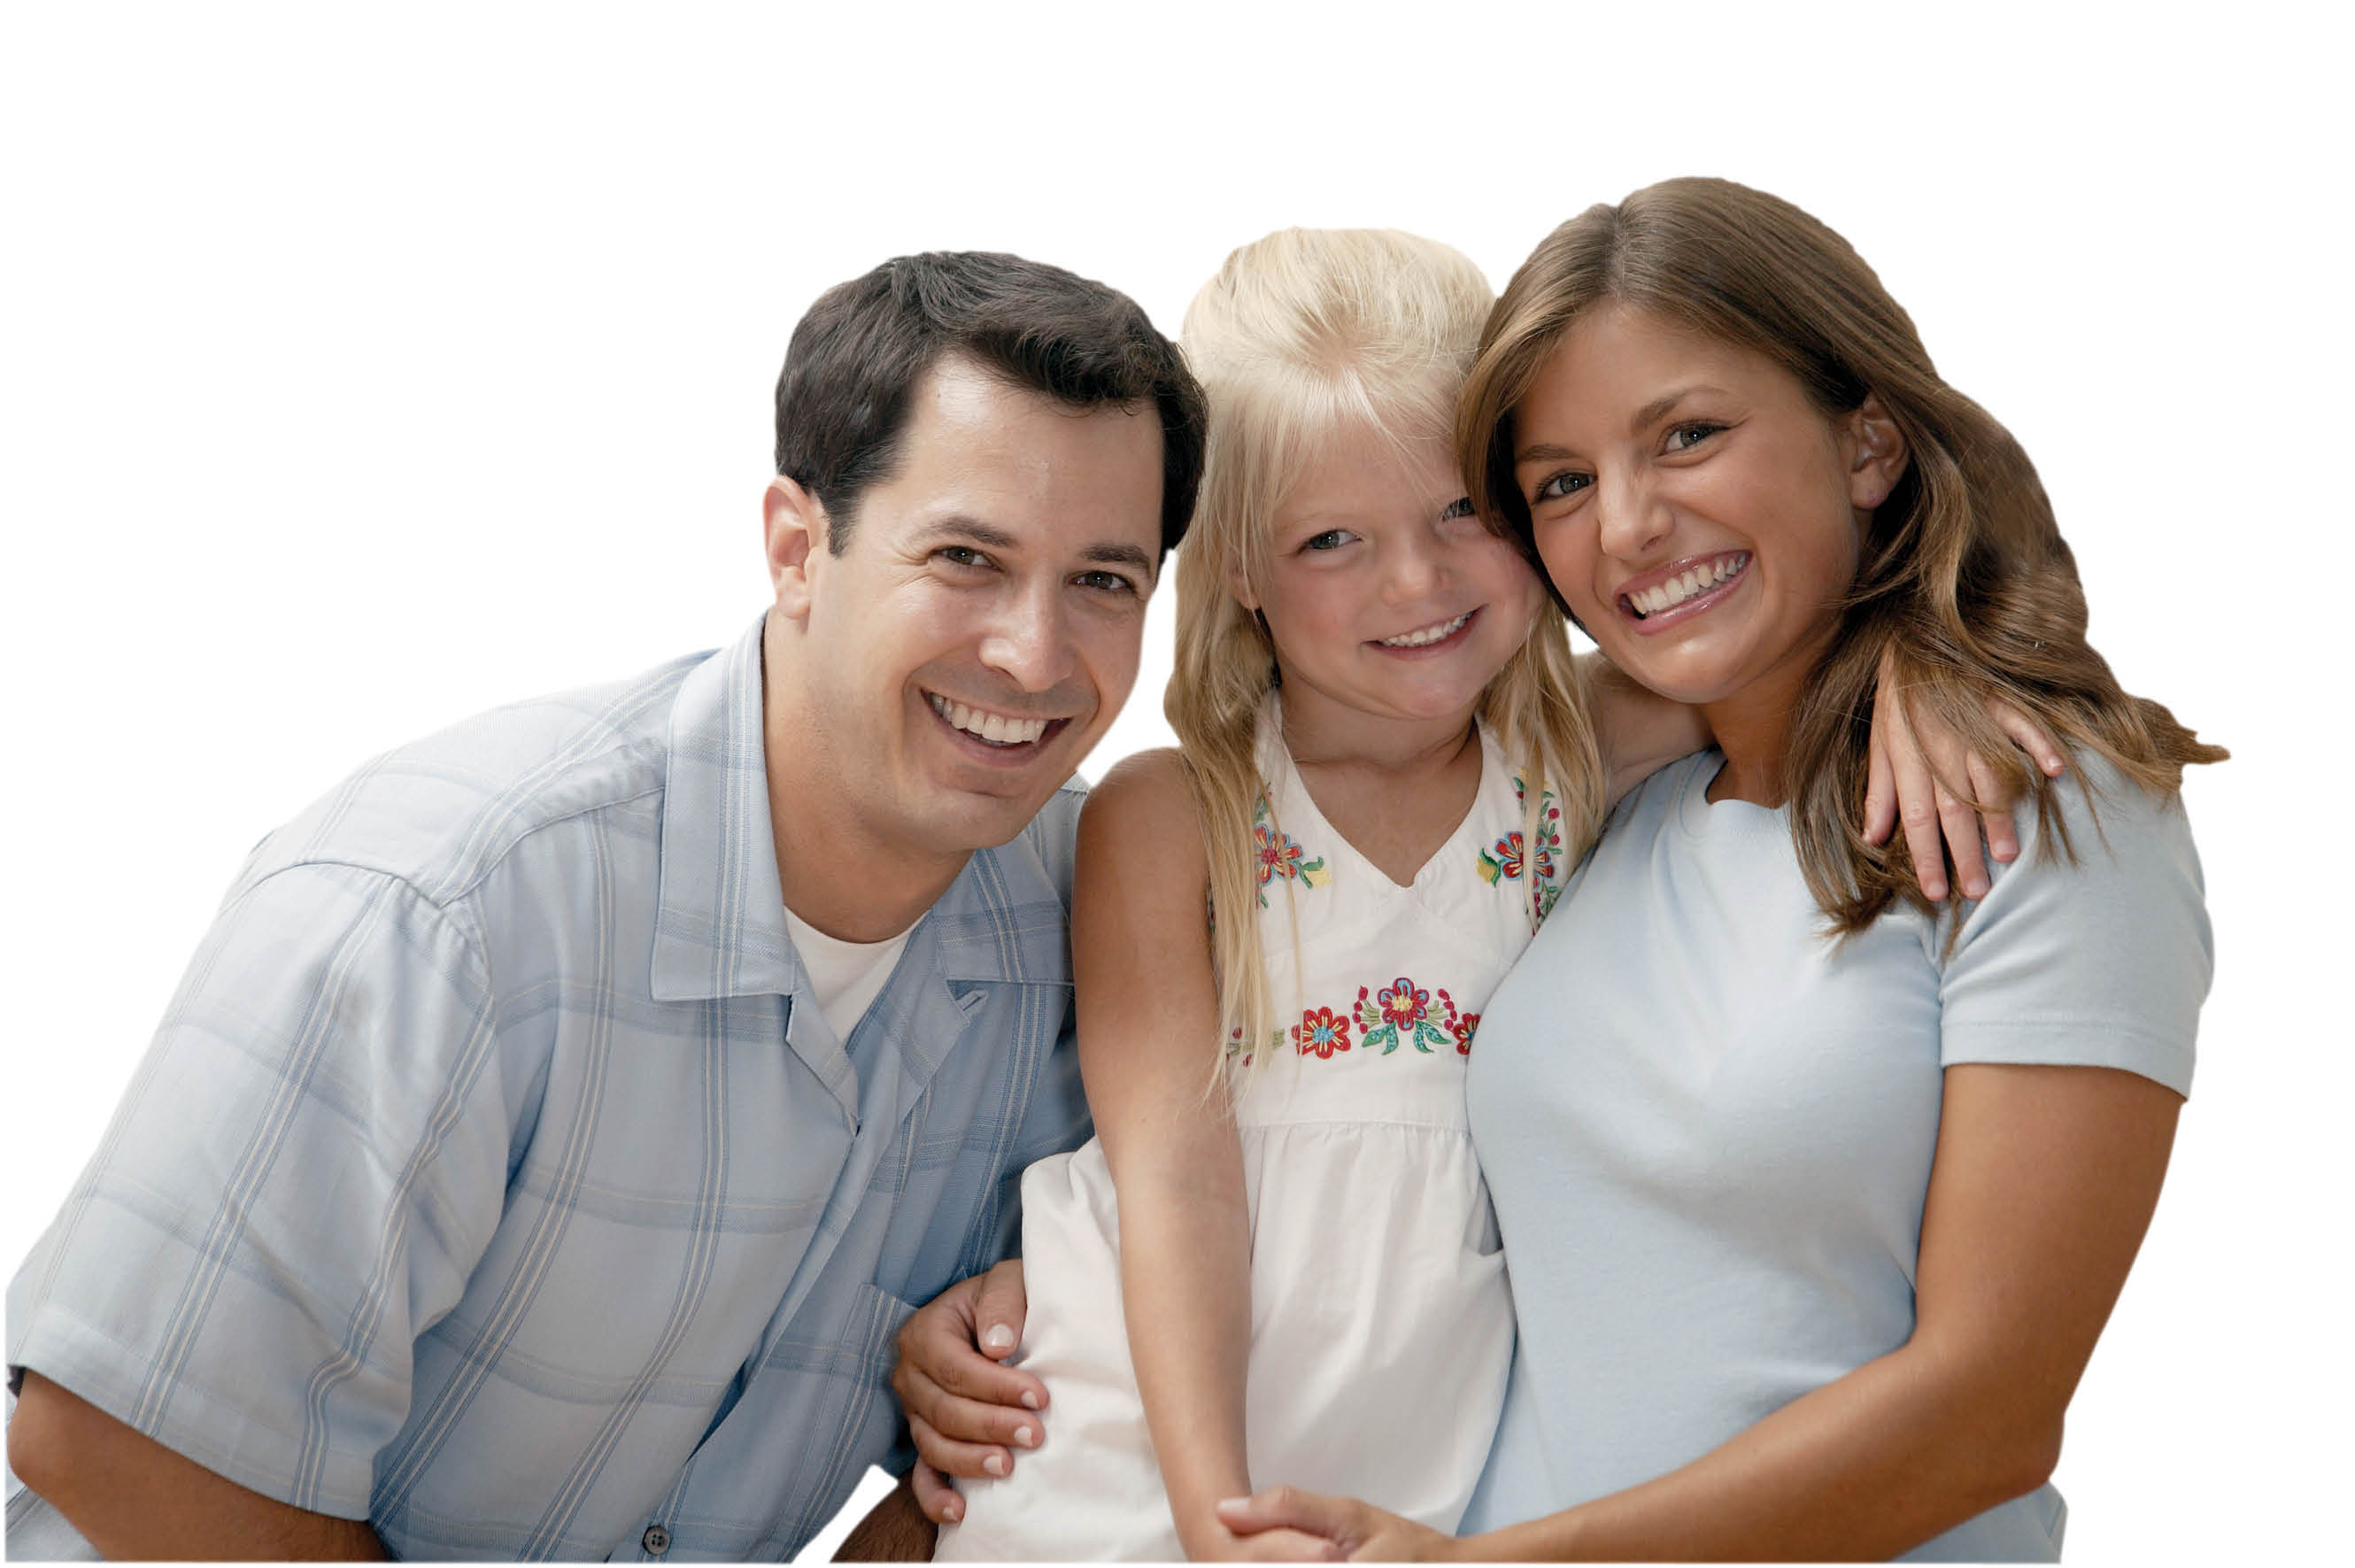 WAREHEIM INSURANCE family photo Wareheim Insurance Consultants Insurance Agent Insurance Consultant near me